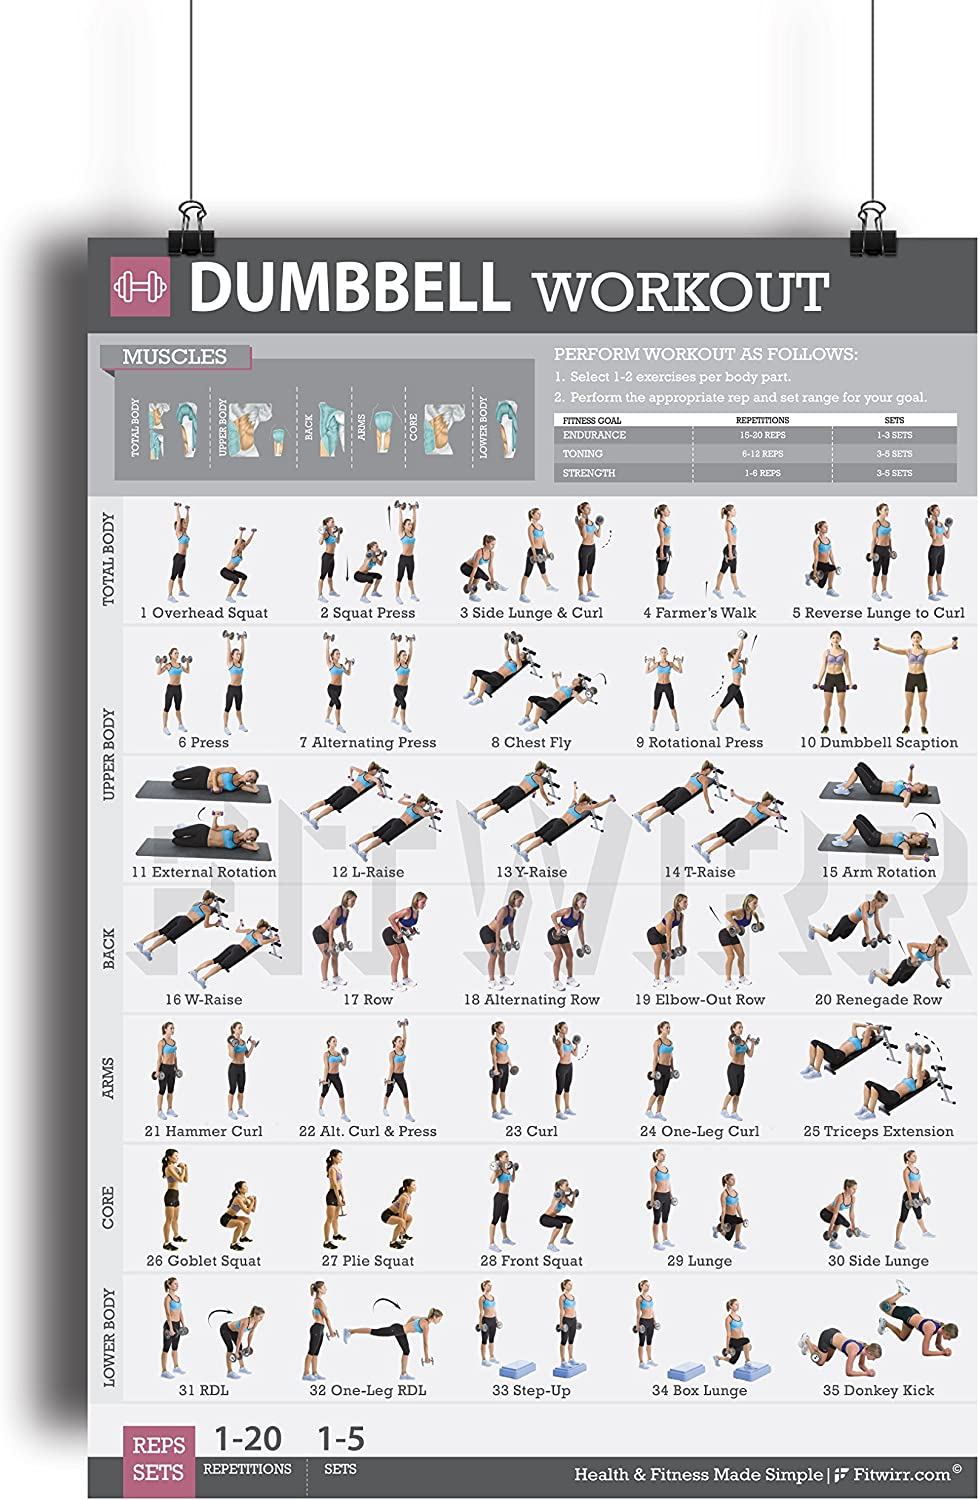 Amazon Com Dumbbell Exercise Workout Poster For Women Laminated Exercise For Women Leg Arm Exercises Home Gyms Fitness Chart Resistance Training Exercises Total Body Workout Exercise Poster Sports Outdoors